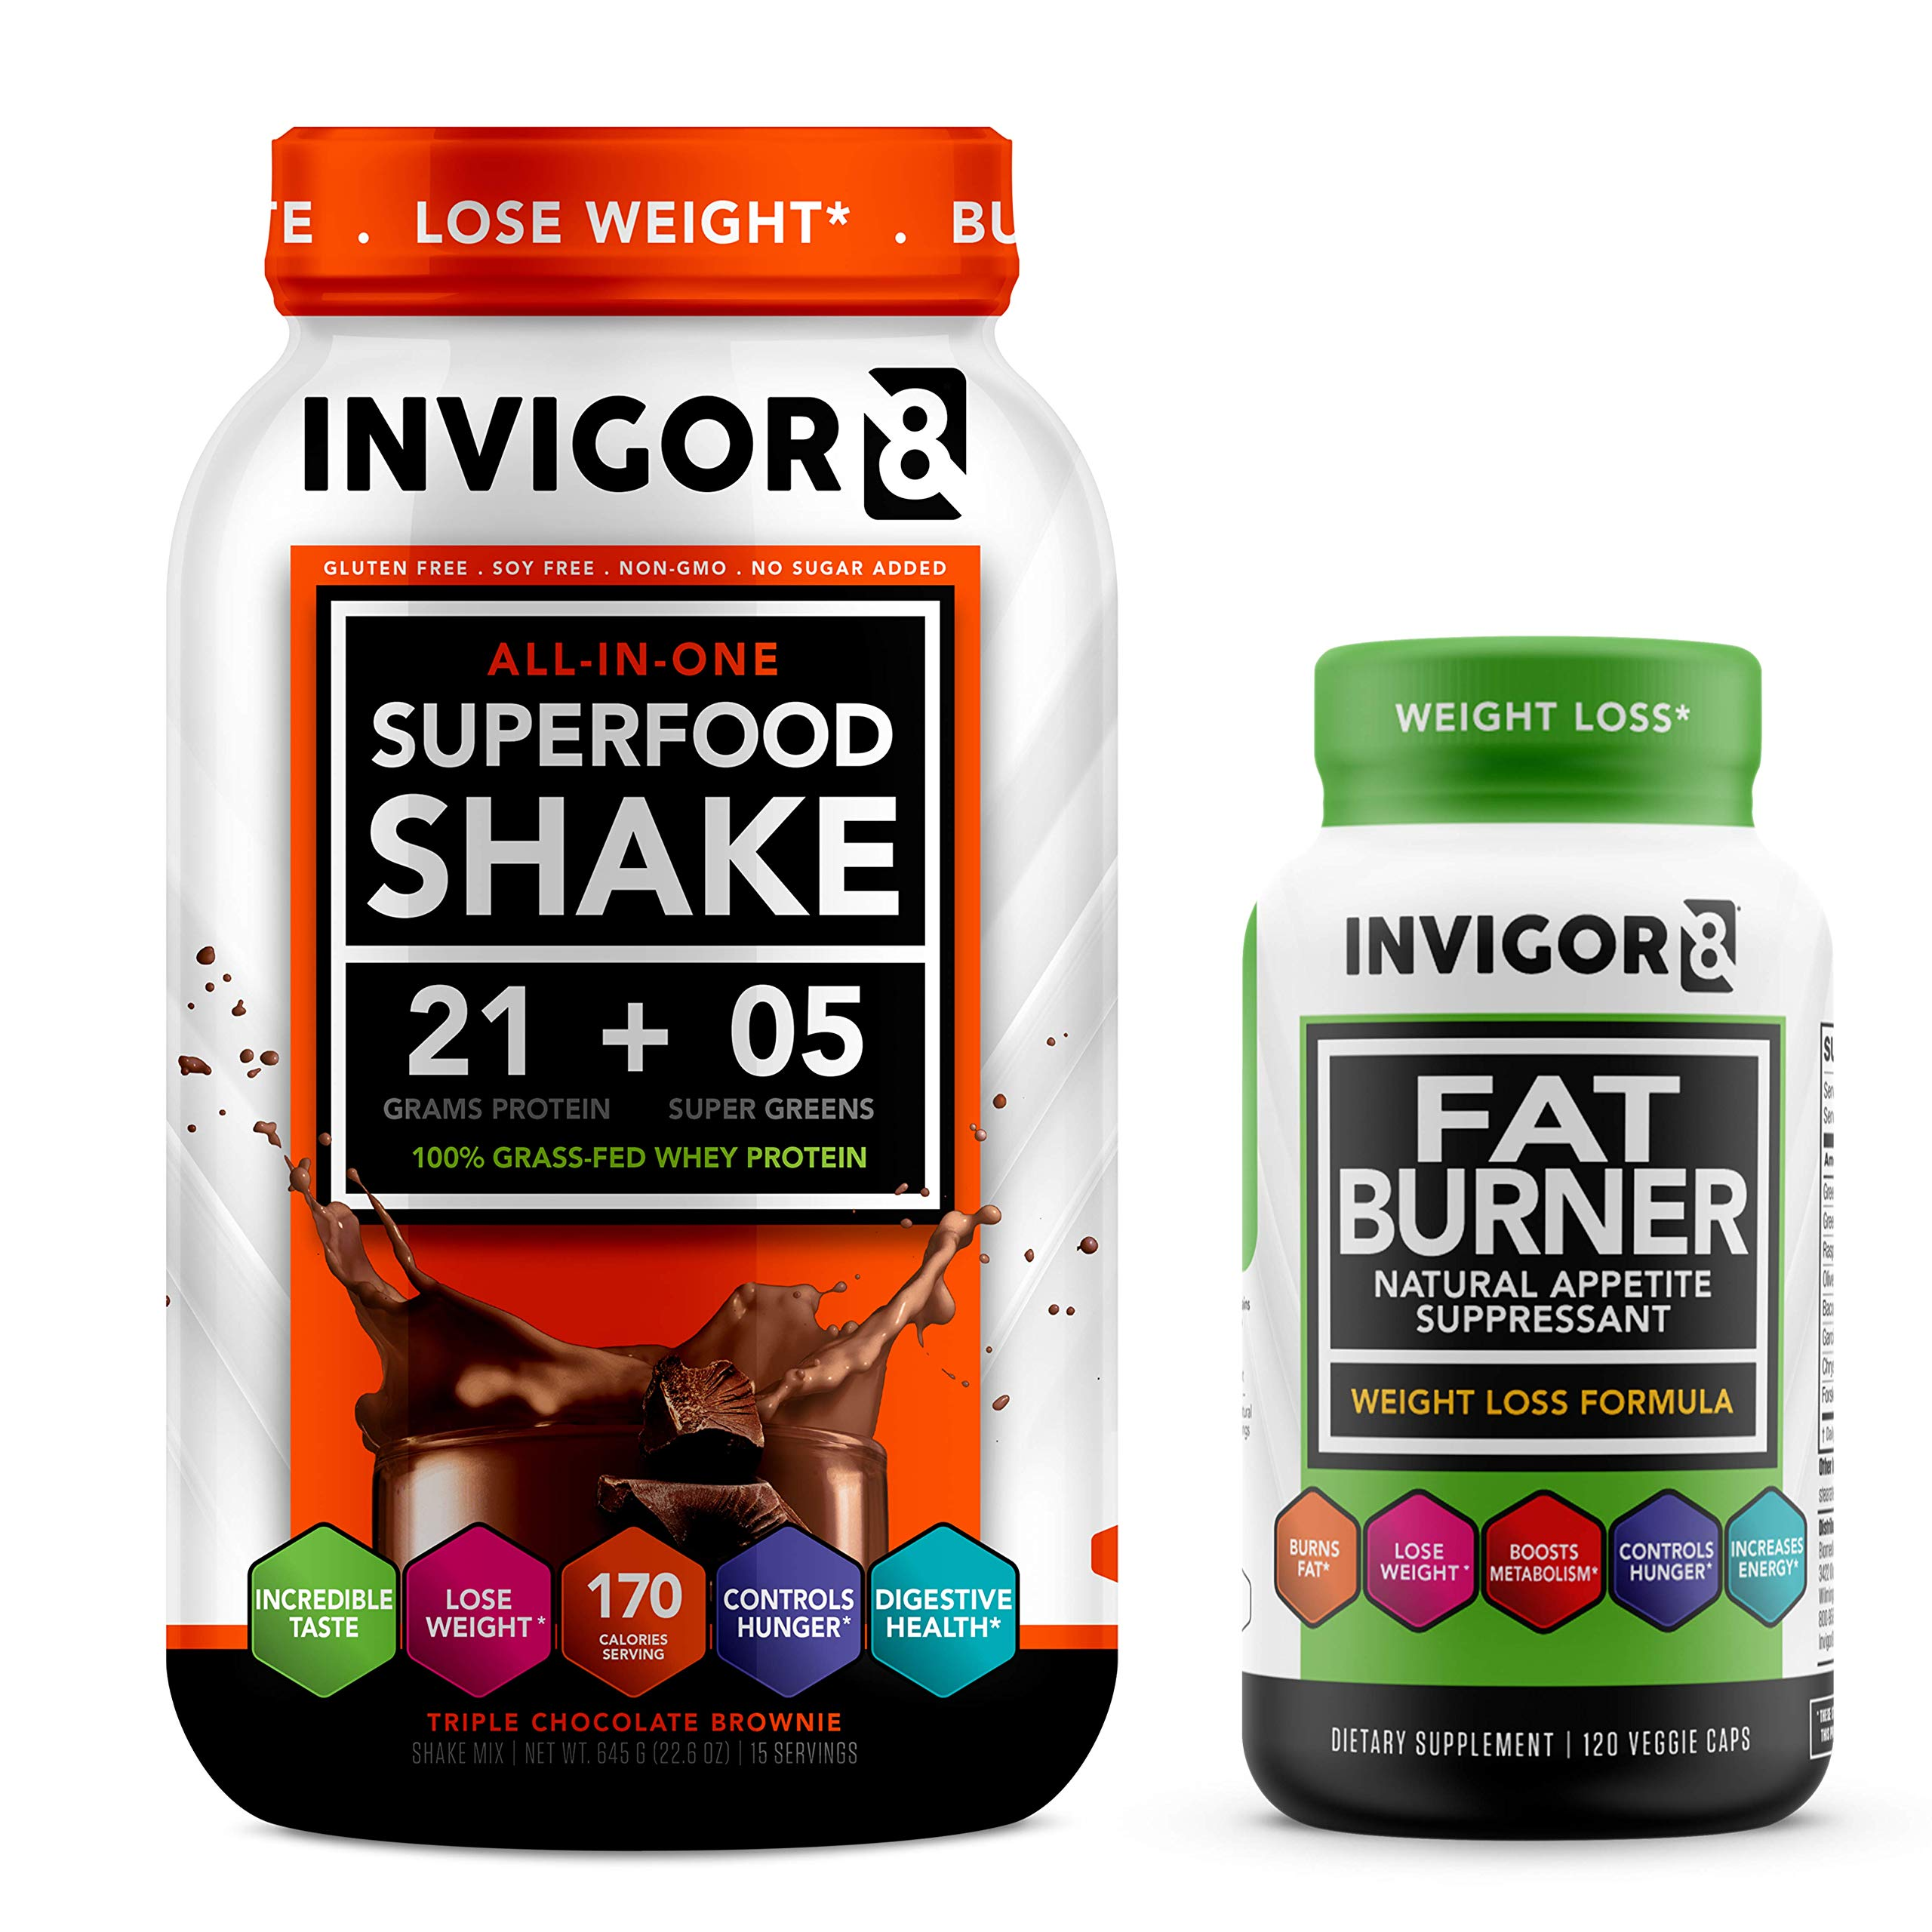 INVIGOR8 Superfood Shake (Chocolate) and Fat Burner Bundle. Gluten-Free and Non GMO Meal Replacement Shake & Healthy Garcinia Weight Loss Supplement/Appetite Suppressant.